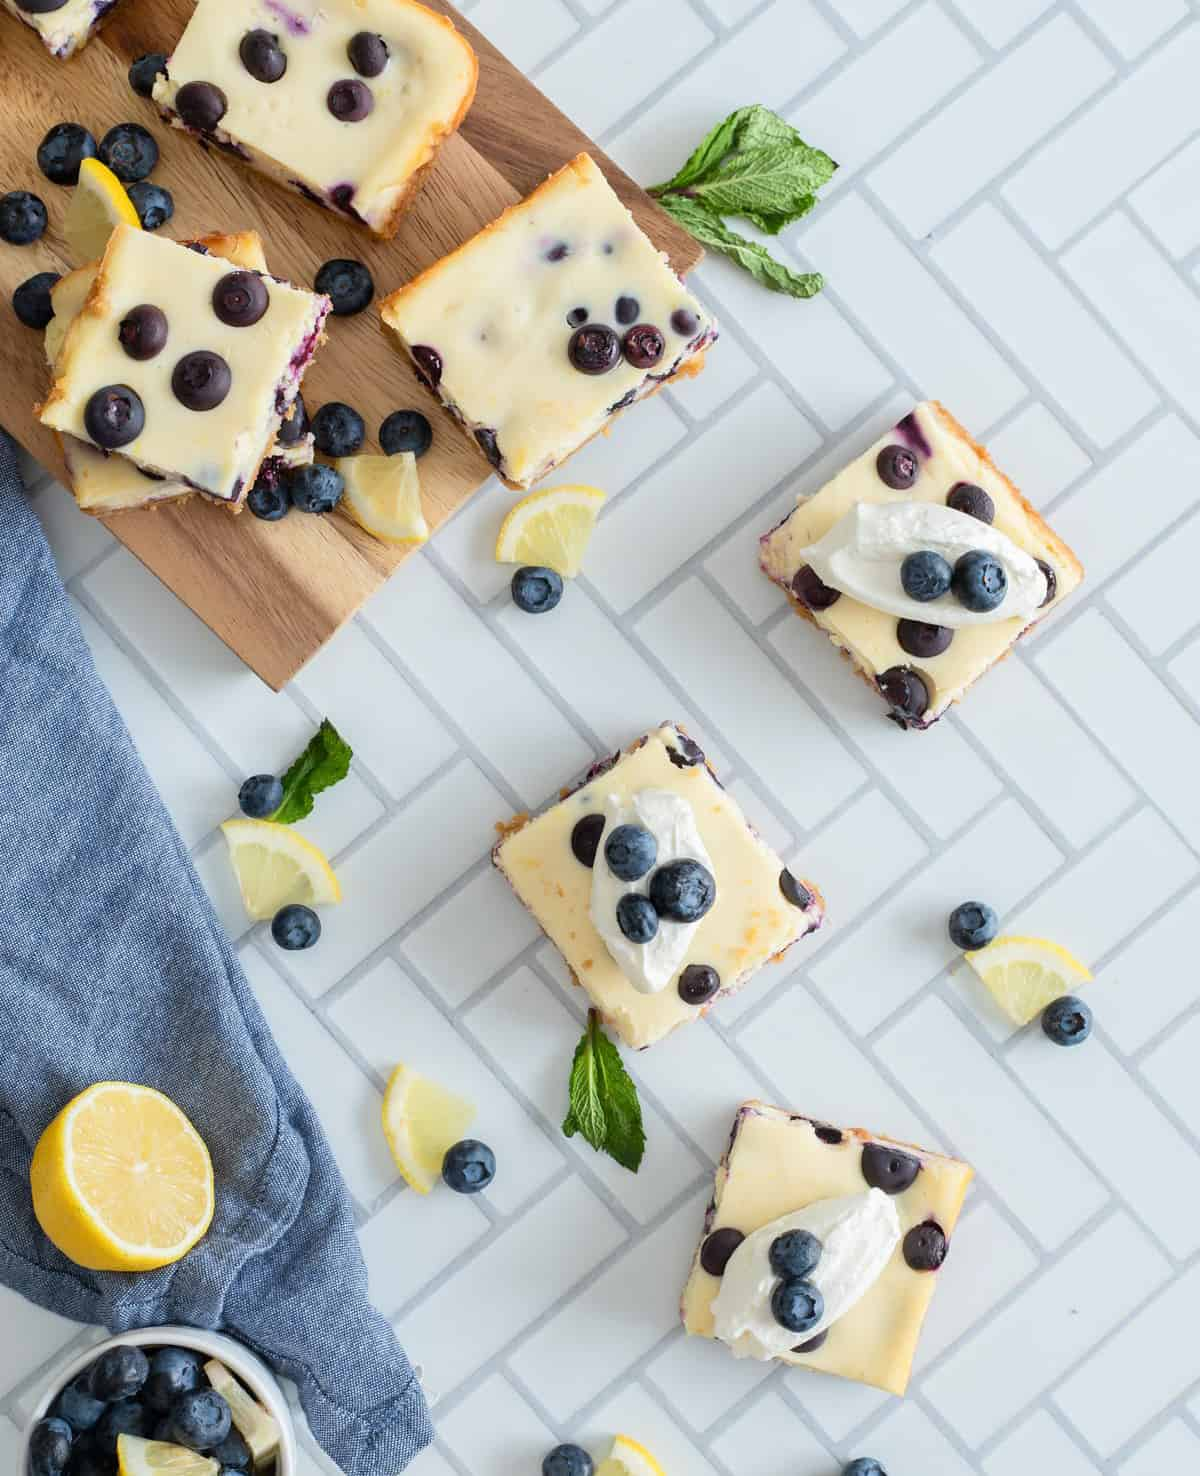 Overhead of cut cheesecake bars garnished with blueberries and lemons